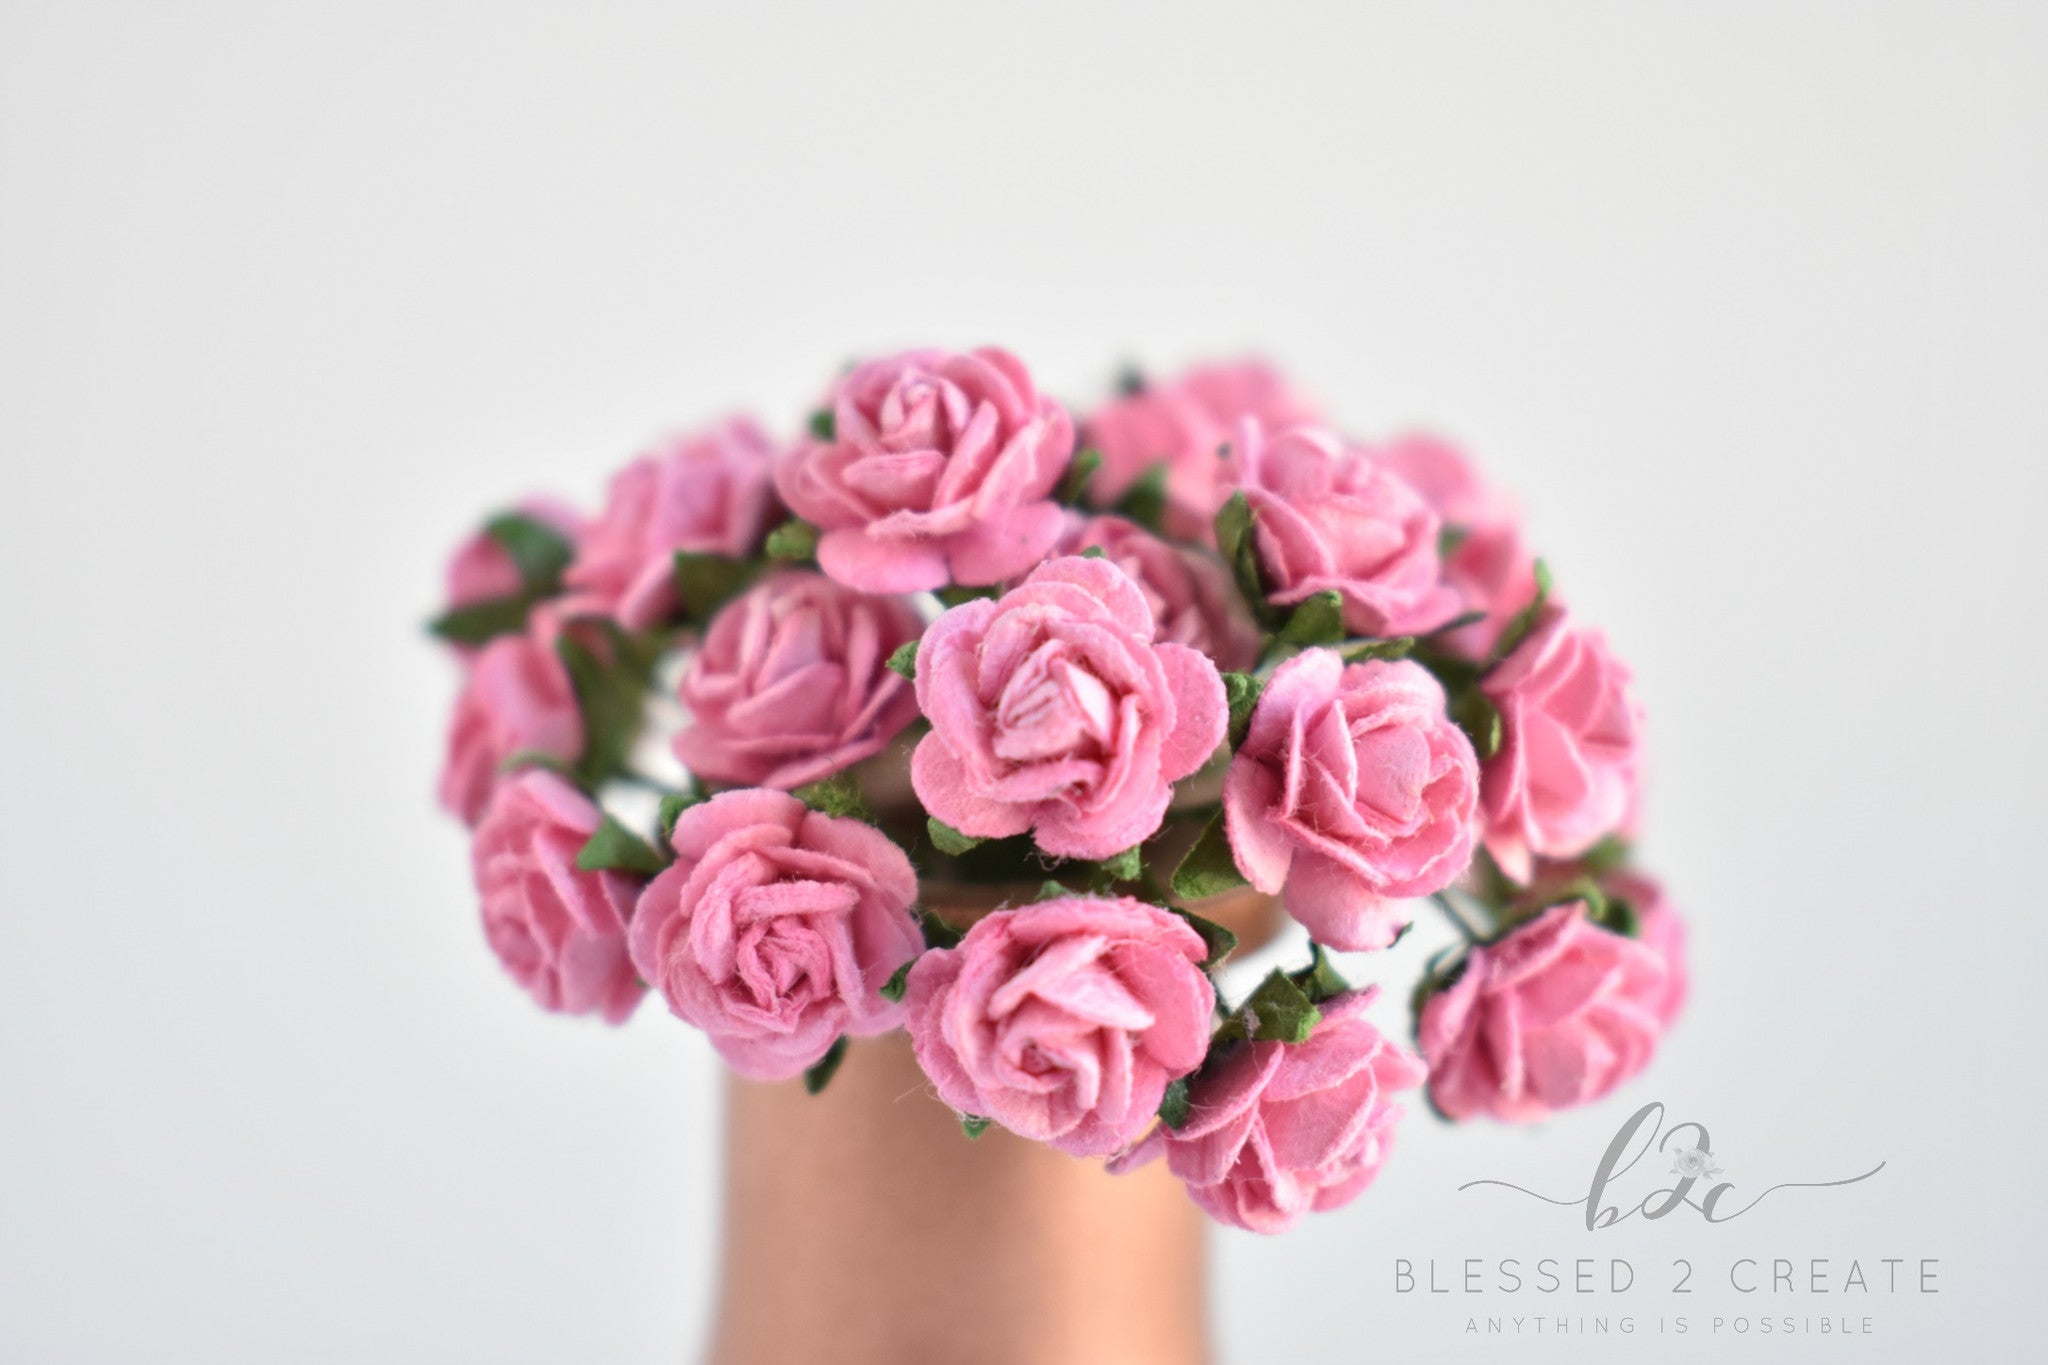 10 10mm Pink Rose Mulberry Paper Flowers Sprinkledwithfunfetti